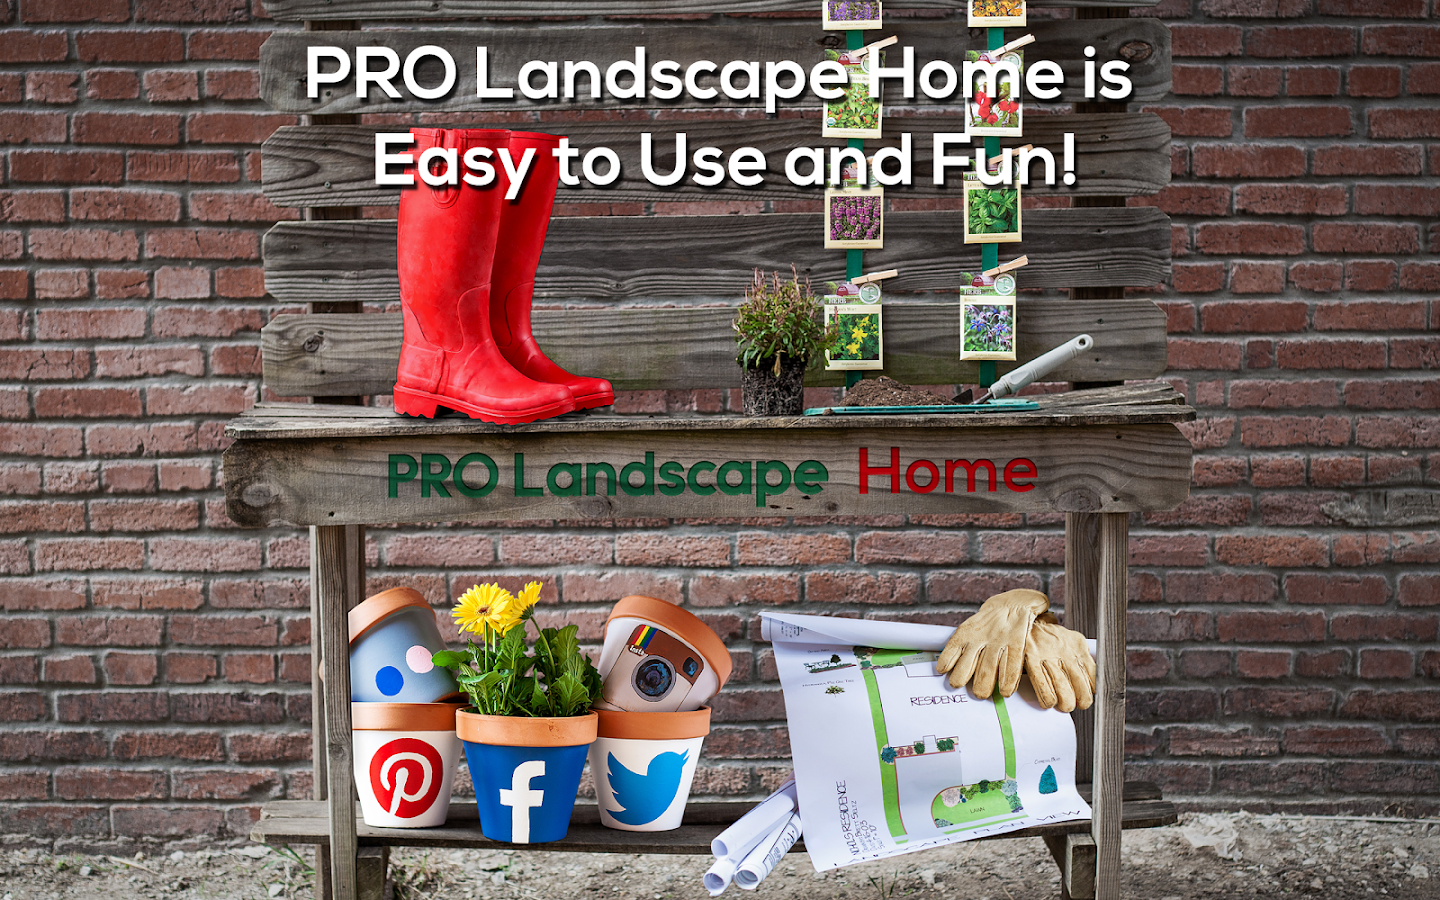 pro landscape home android apps on google play pro landscape home screenshot